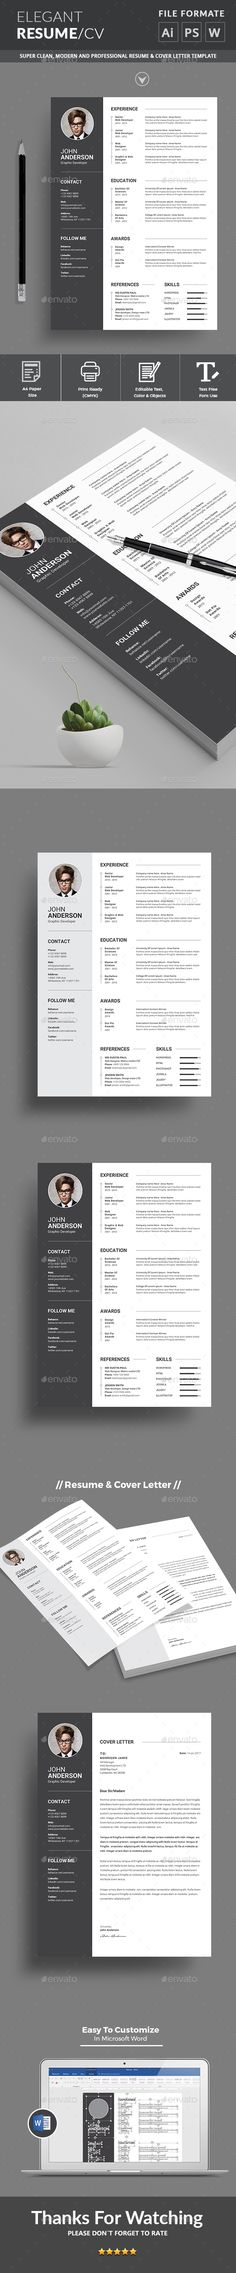 Resume - Resumes Stationery Download here Resume Templates - resume template design